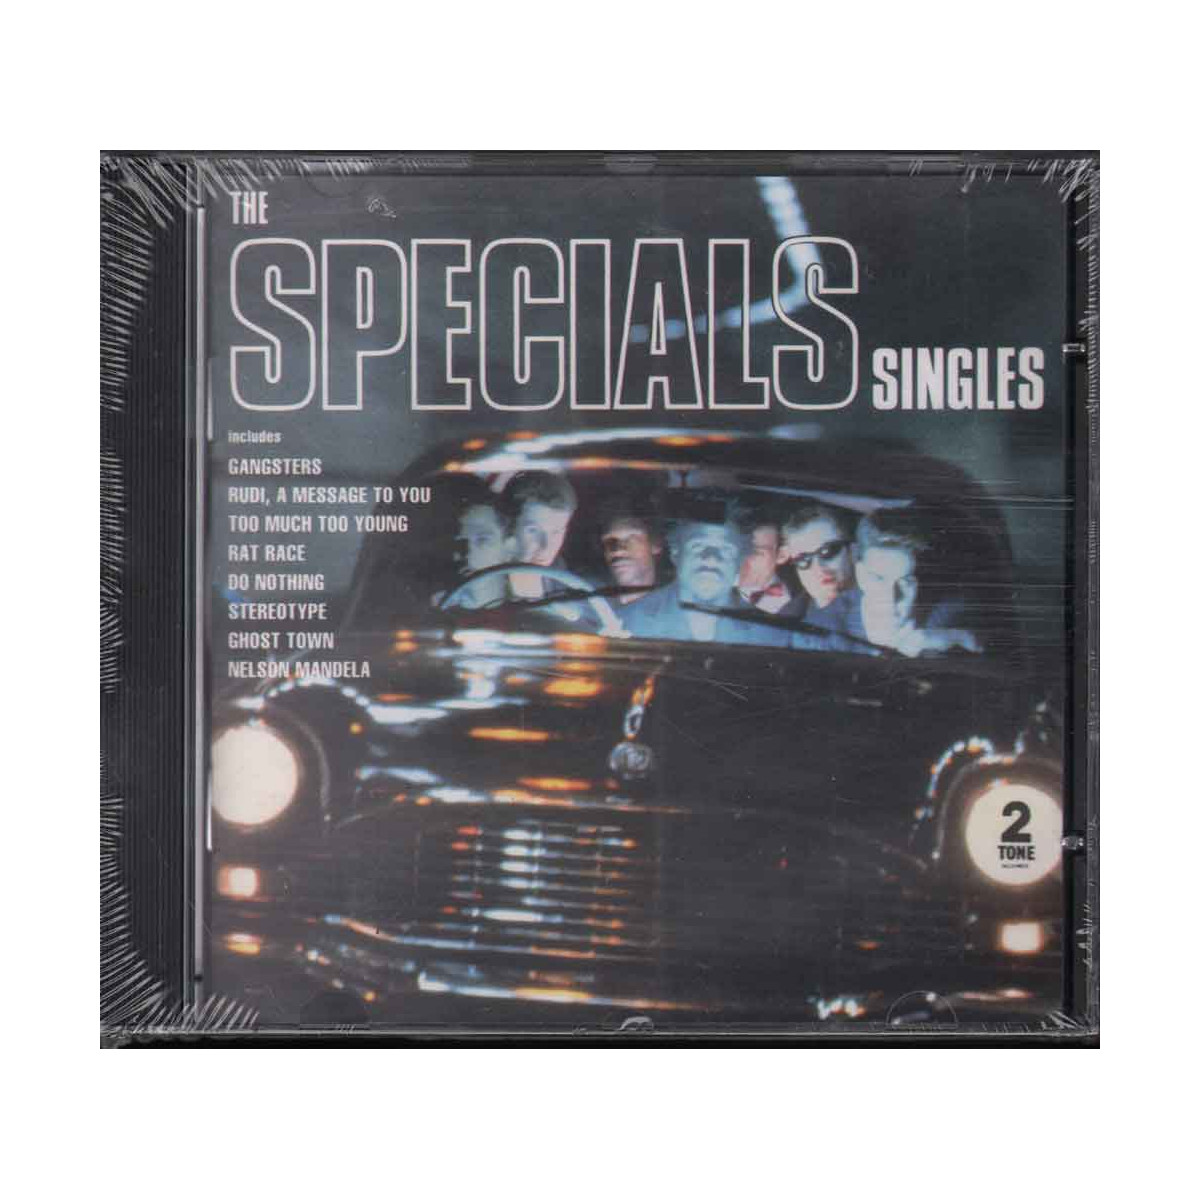 The Specials CD Singles Nuovo Sigillato 0094632182326